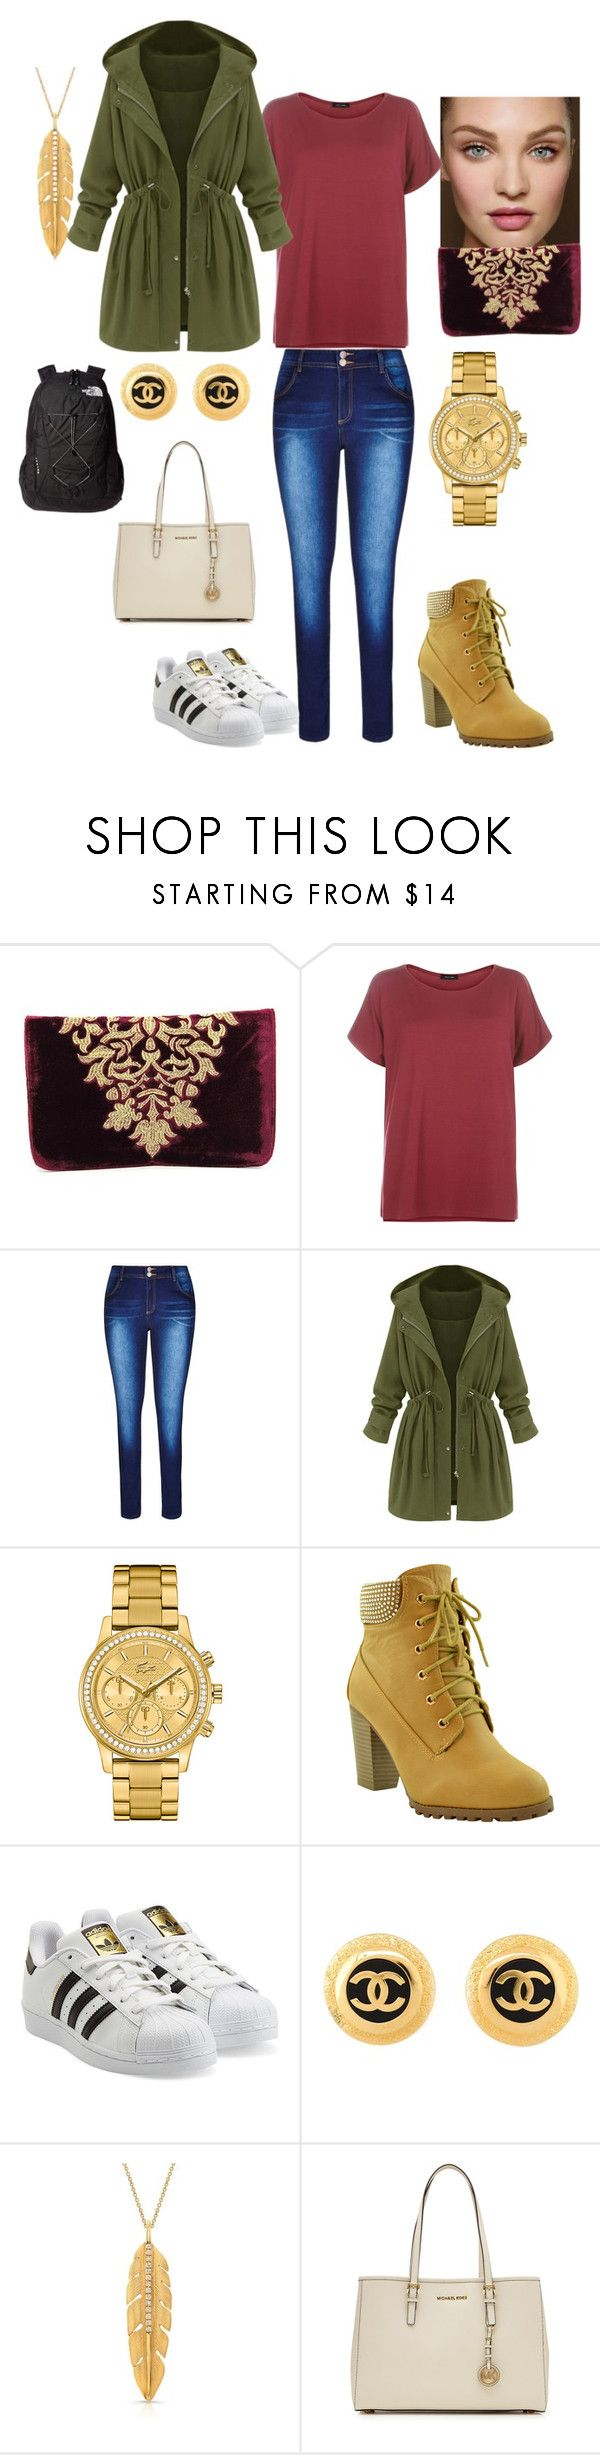 """wuah"" by meanixee on Polyvore featuring Shiraleah, City Chic, Lacoste, adidas Originals, Chanel, MICHAEL Michael Kors and The North Face"